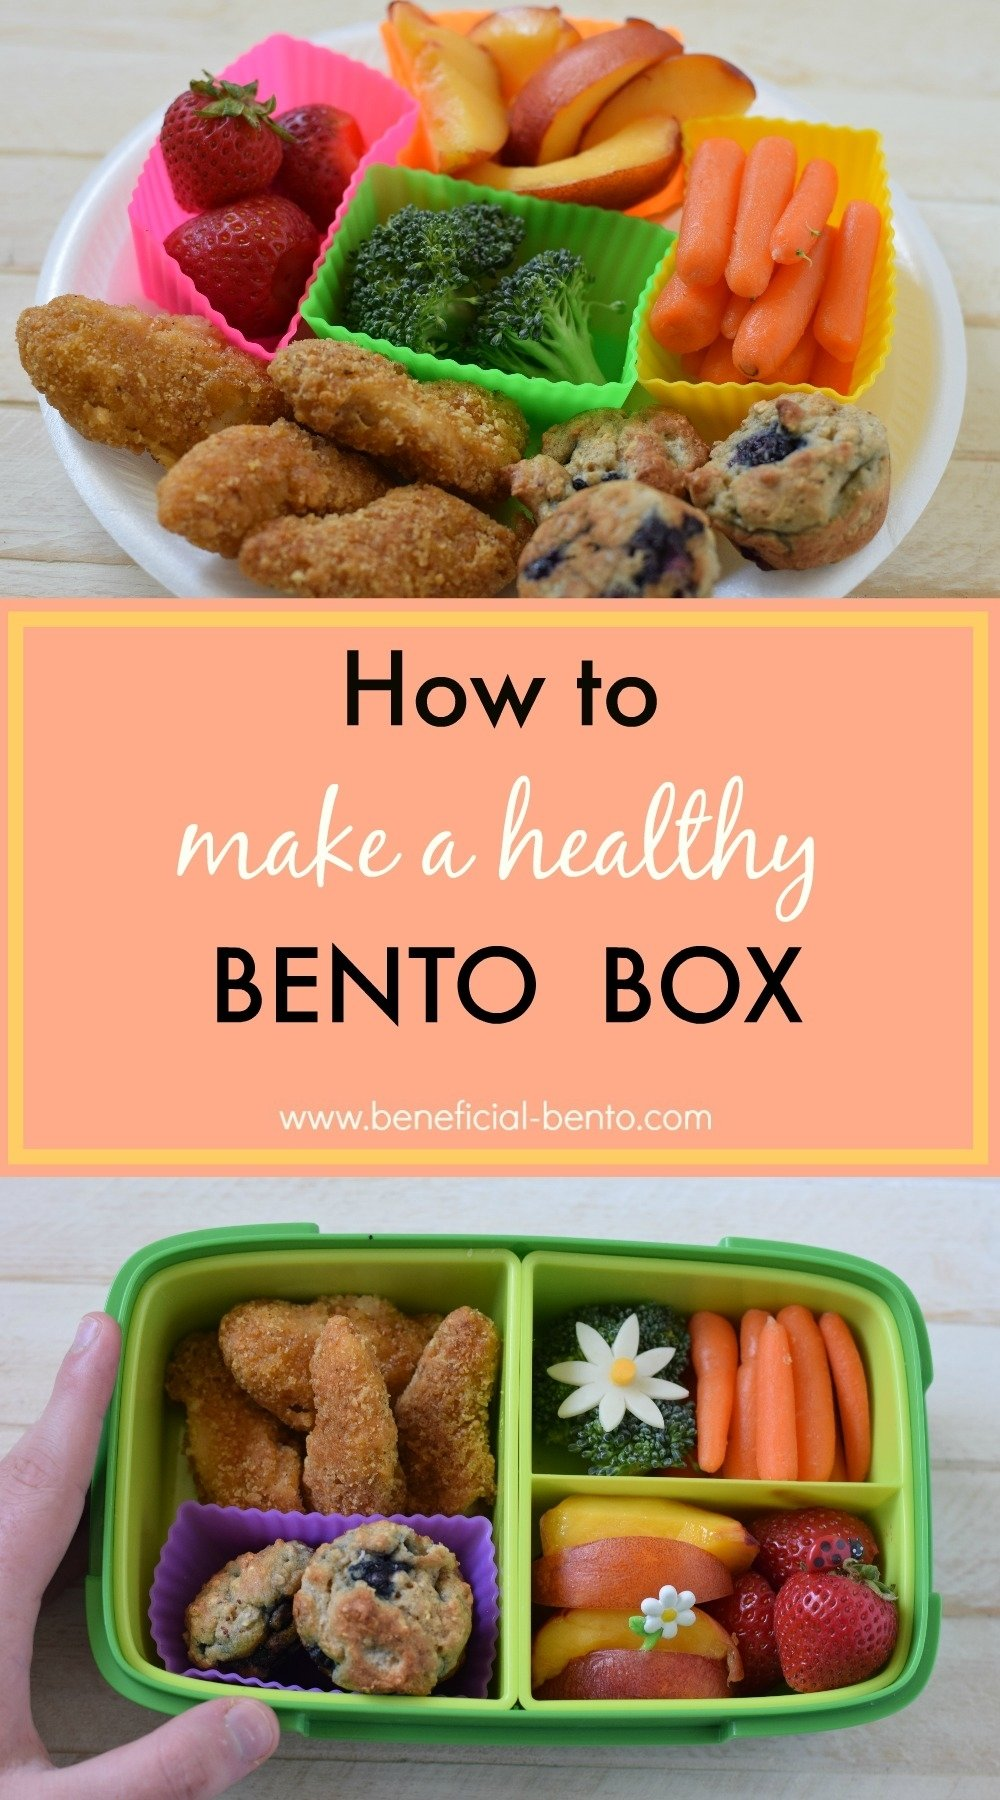 10 Nice Bento Box Ideas For Adults how to make a healthy bento box bento box bento and box 2020